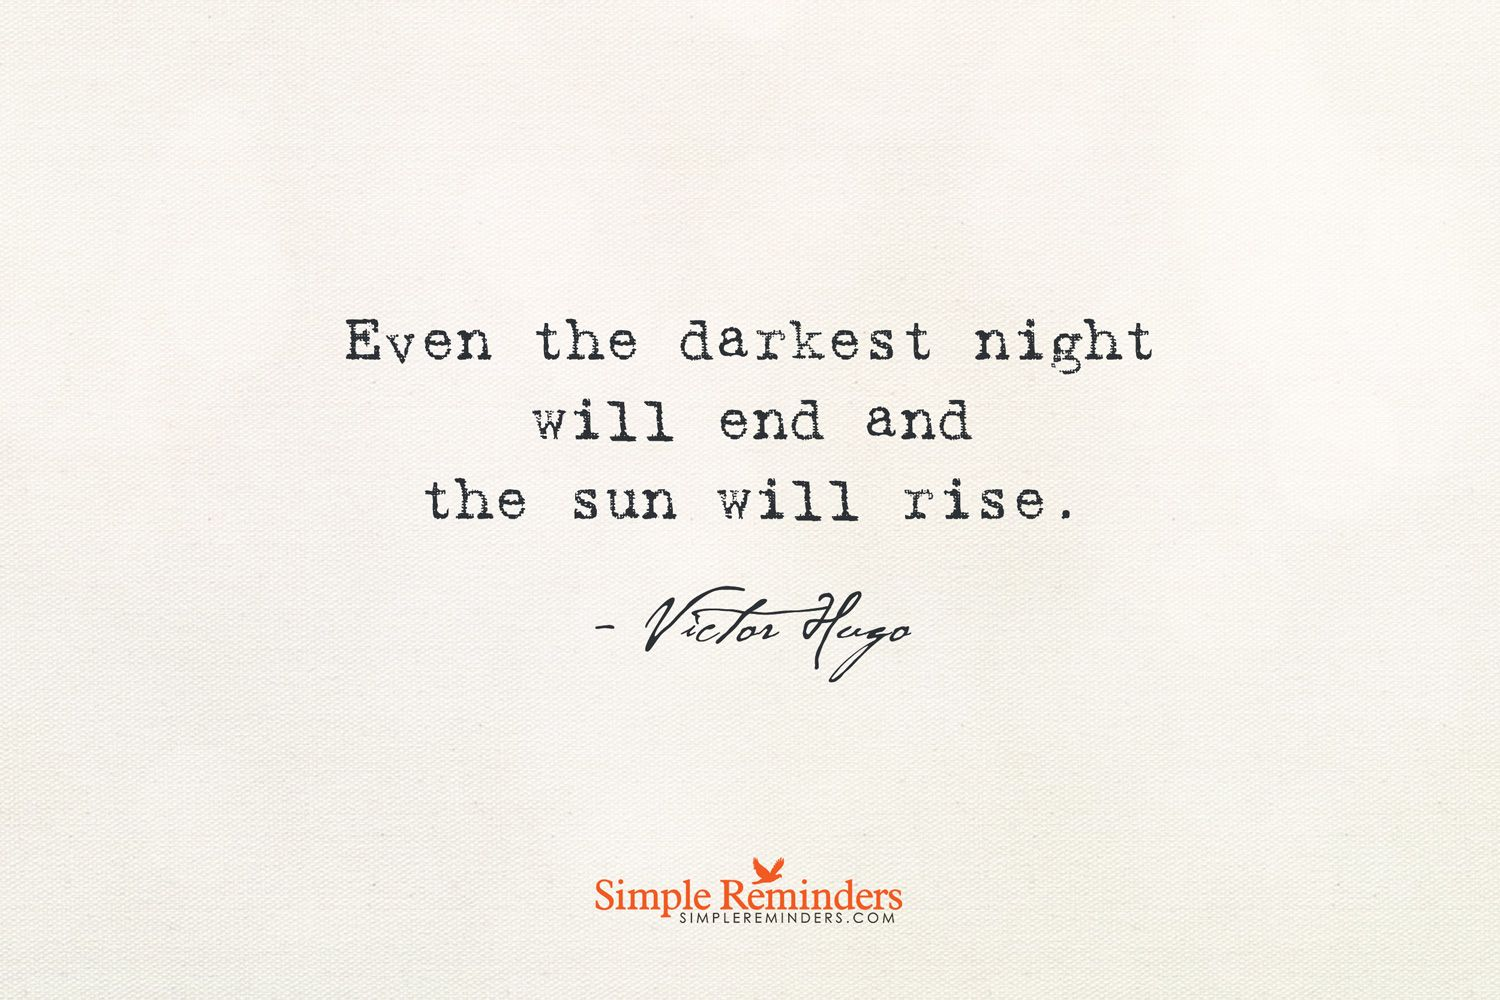 Pin By Nicole Mayne Warner On Chewable 2 Simple Reminder Lyric To Live Proverb Quotes The Sun Rising Poem Theme